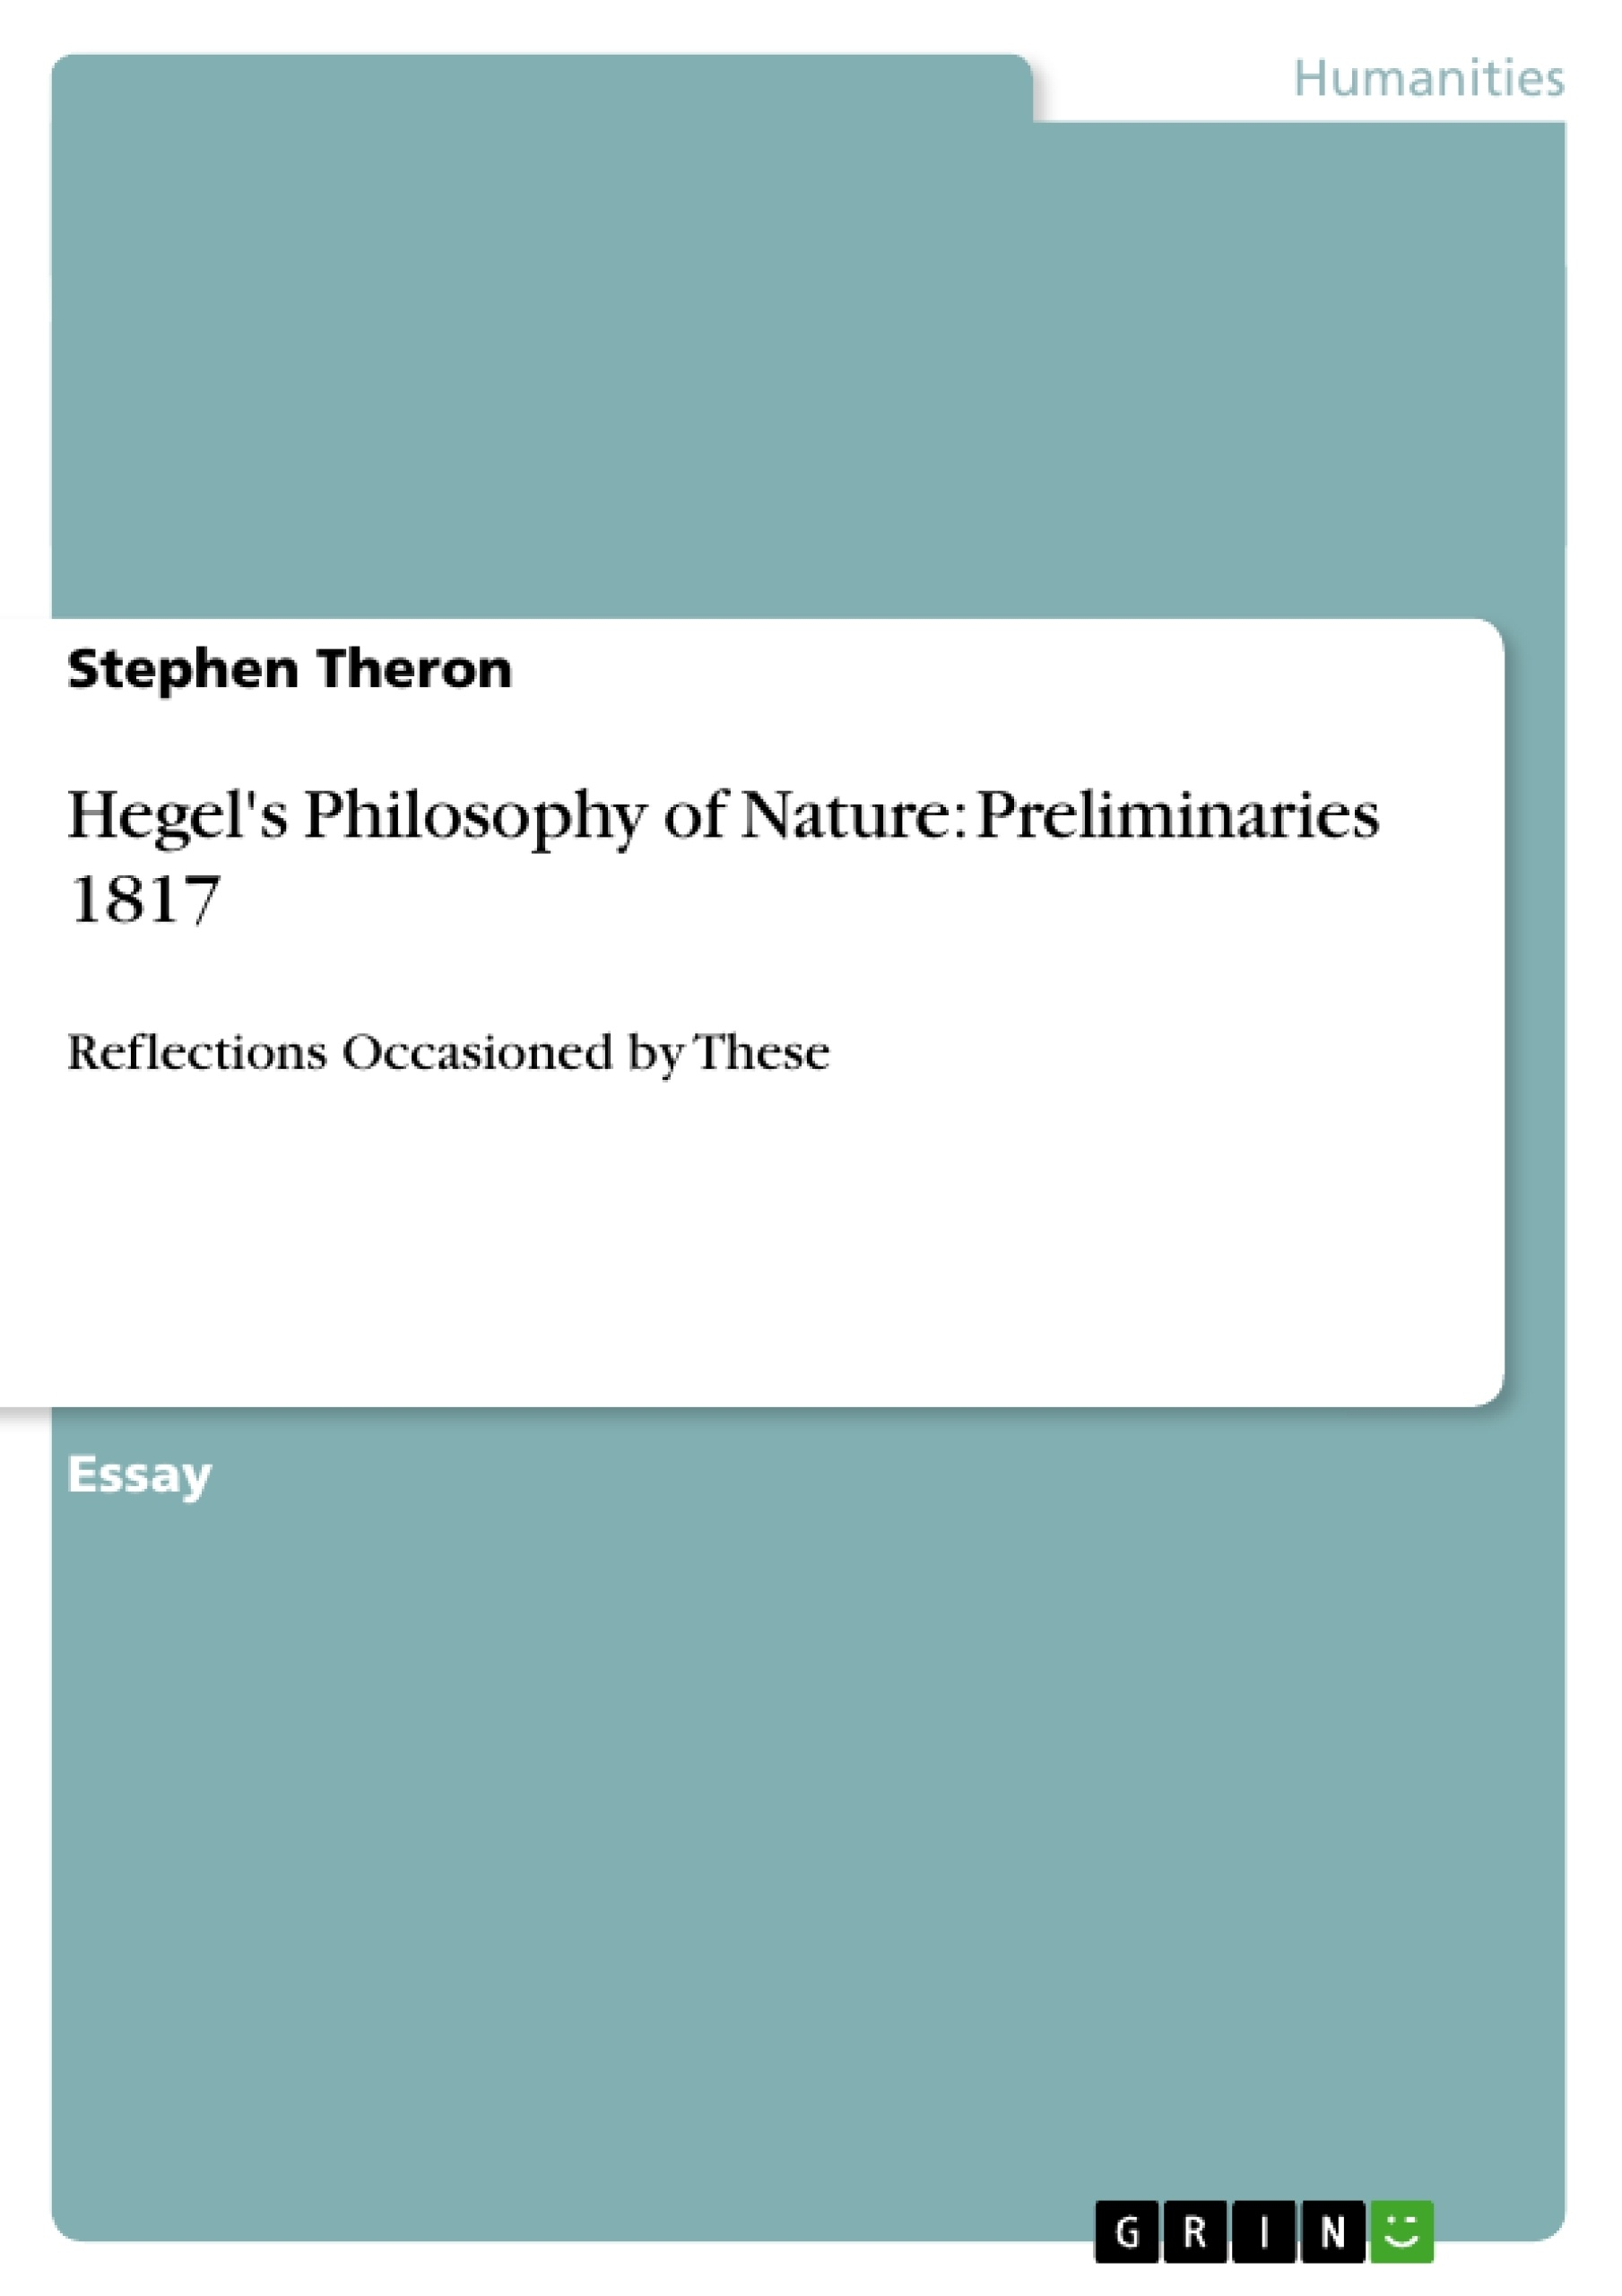 Title: Hegel's Philosophy of Nature: Preliminaries 1817